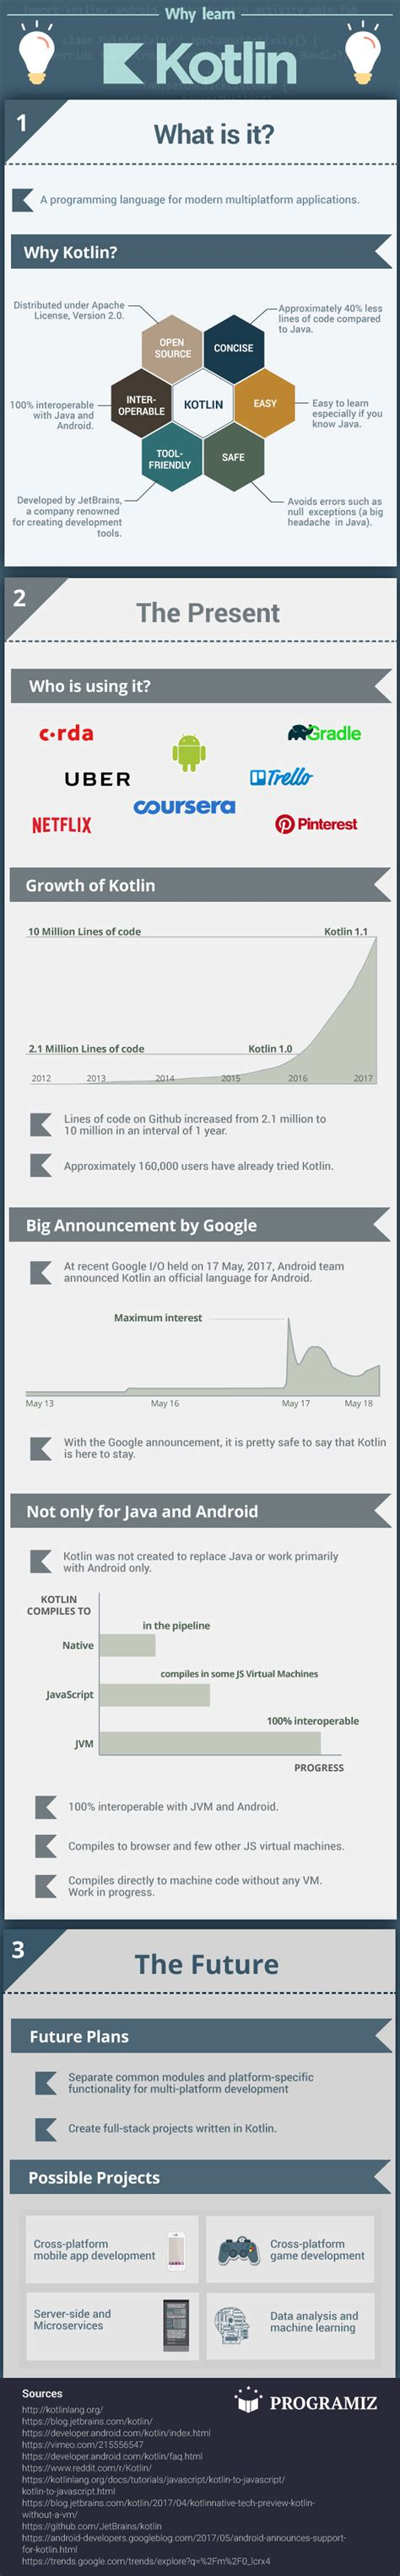 reactive programming in kotlin design and build non blocking asynchronous kotlin applications with rxkotlin reactor kotlin android and books why learn kotlin infographic dzone java